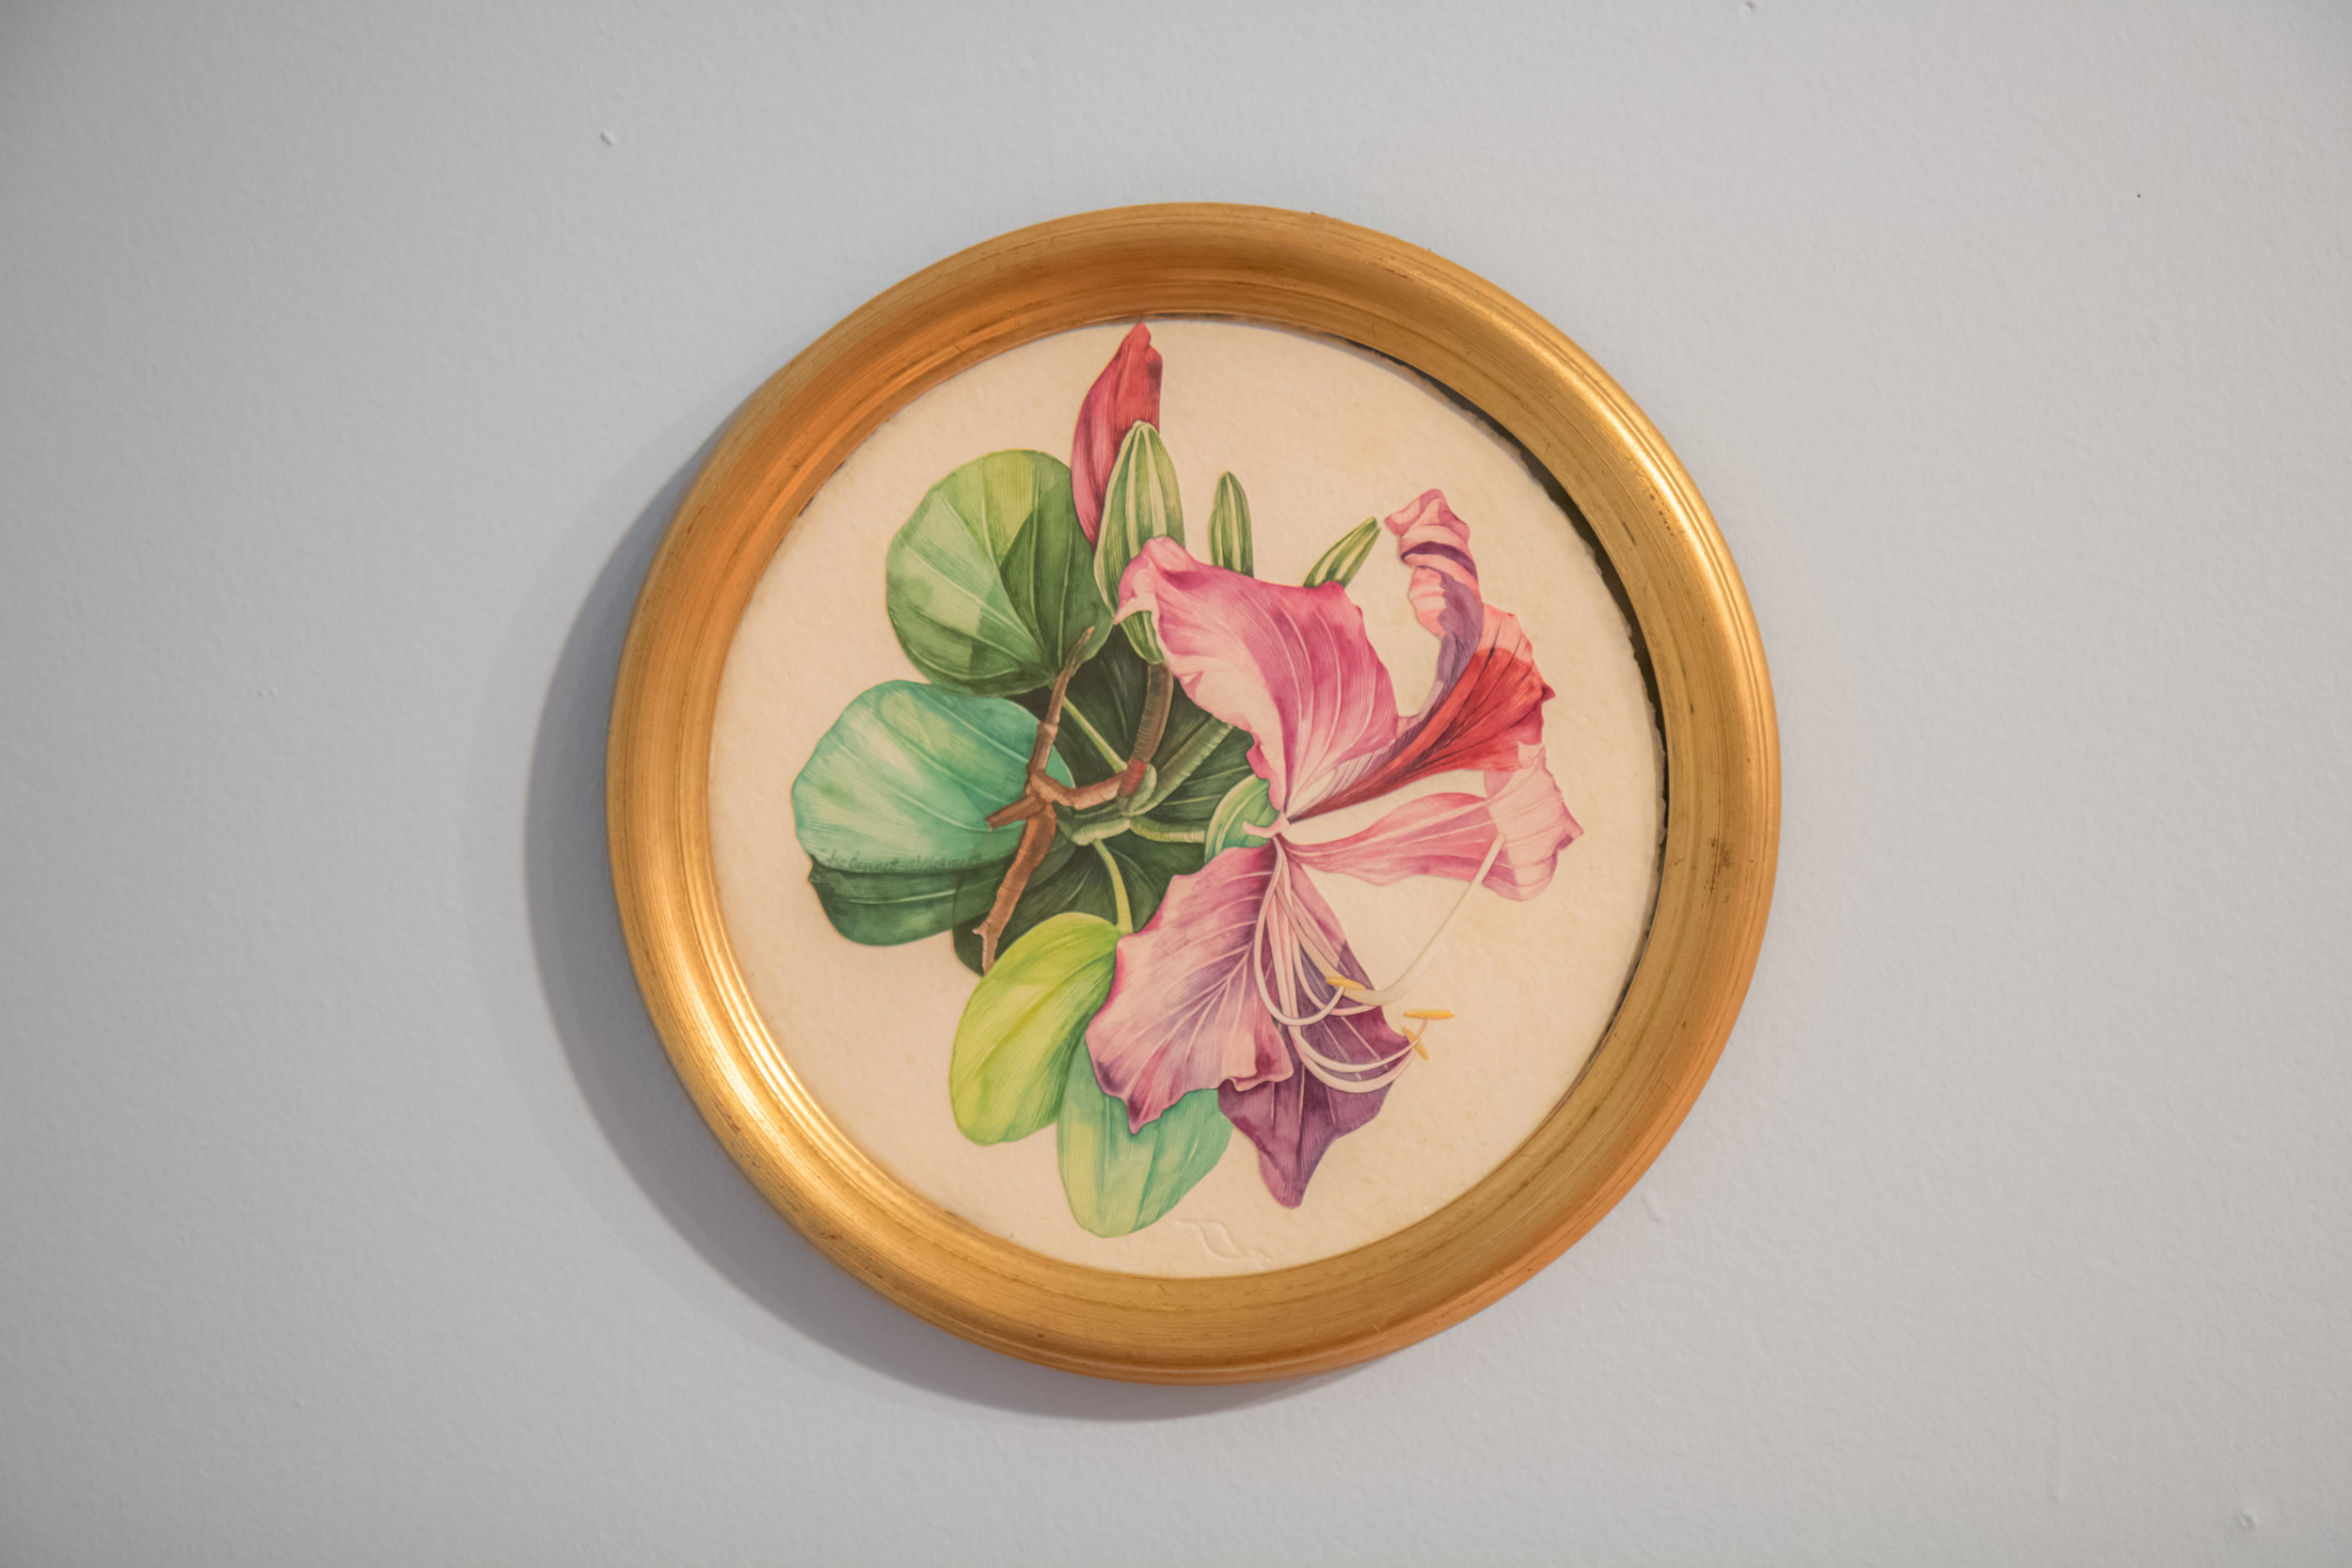 """Poor Man's Orchid"" (1989) Sue Bennett Williams, watercolour on paper, 11 inches diameter. The Dawn Davies Collection."